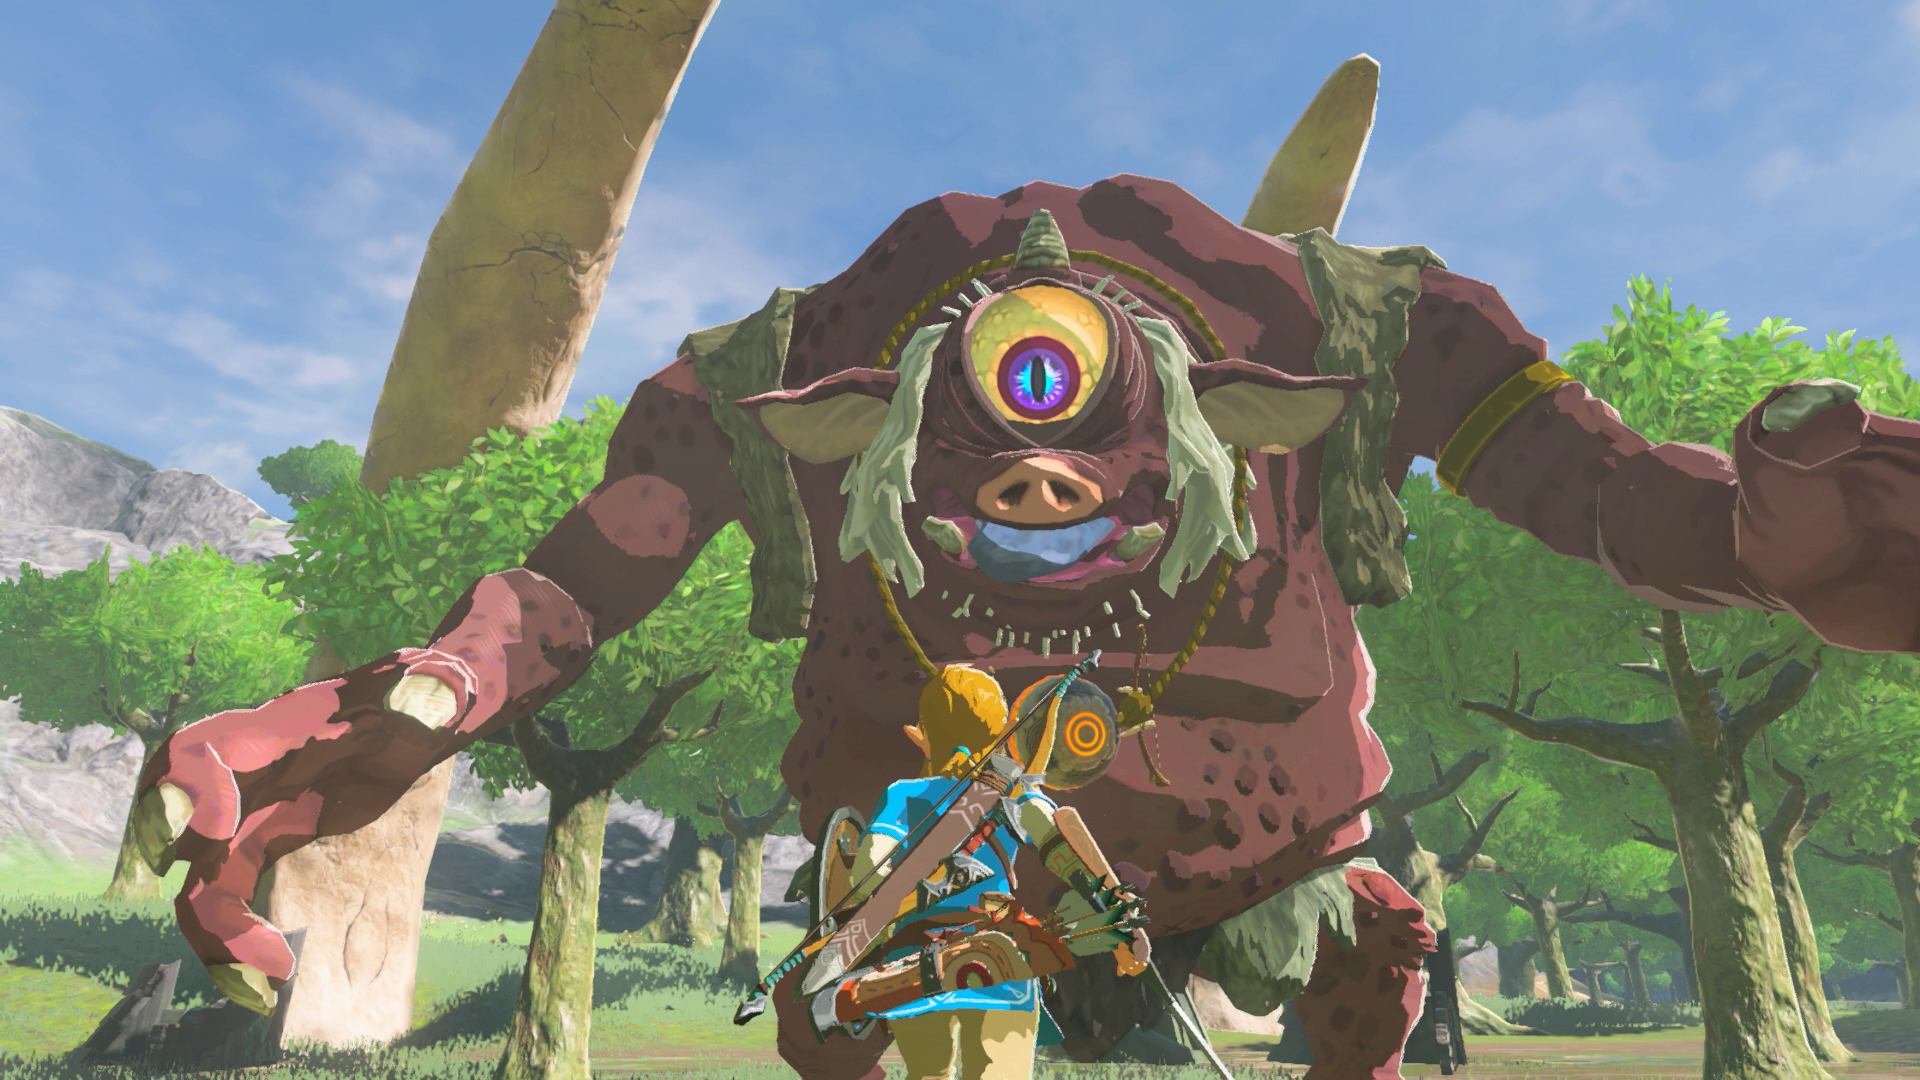 10 things I learned playing Zelda: Breath of the Wild